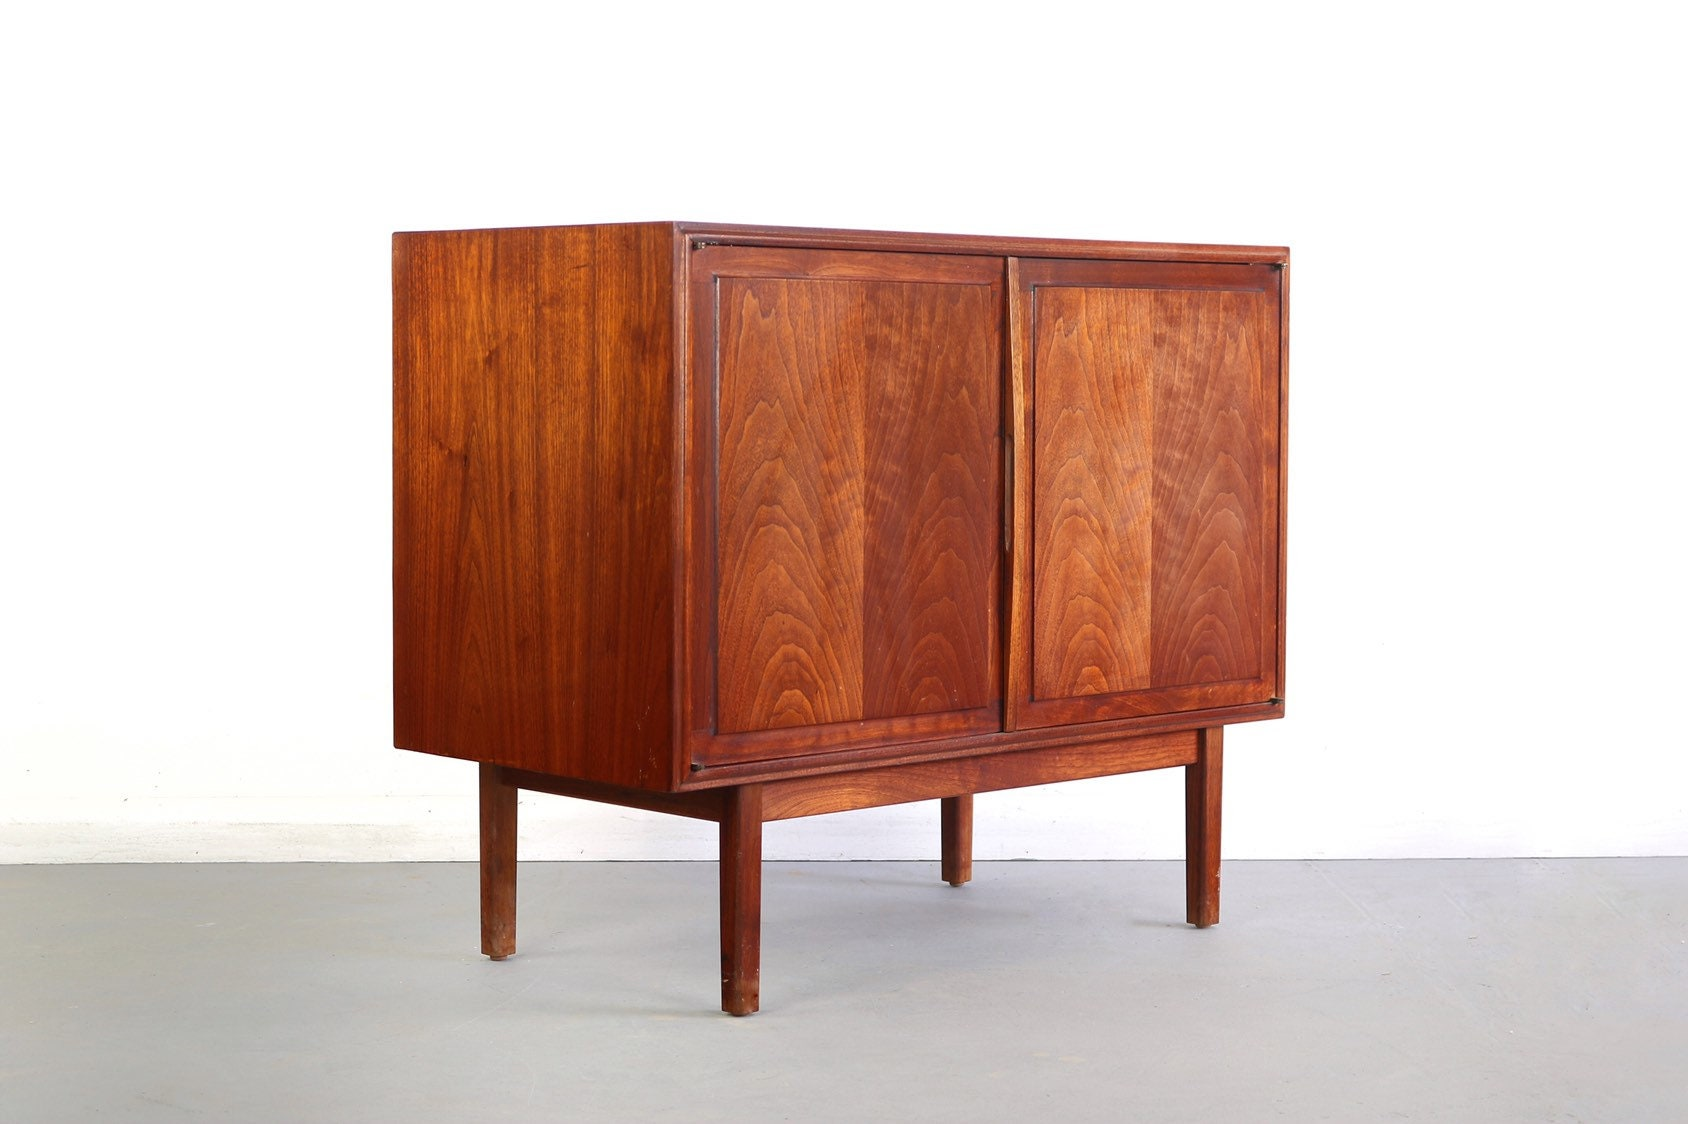 Genial Walnut Low Profile Cabinet/Credenza By Jack Cartwright For   Etsy